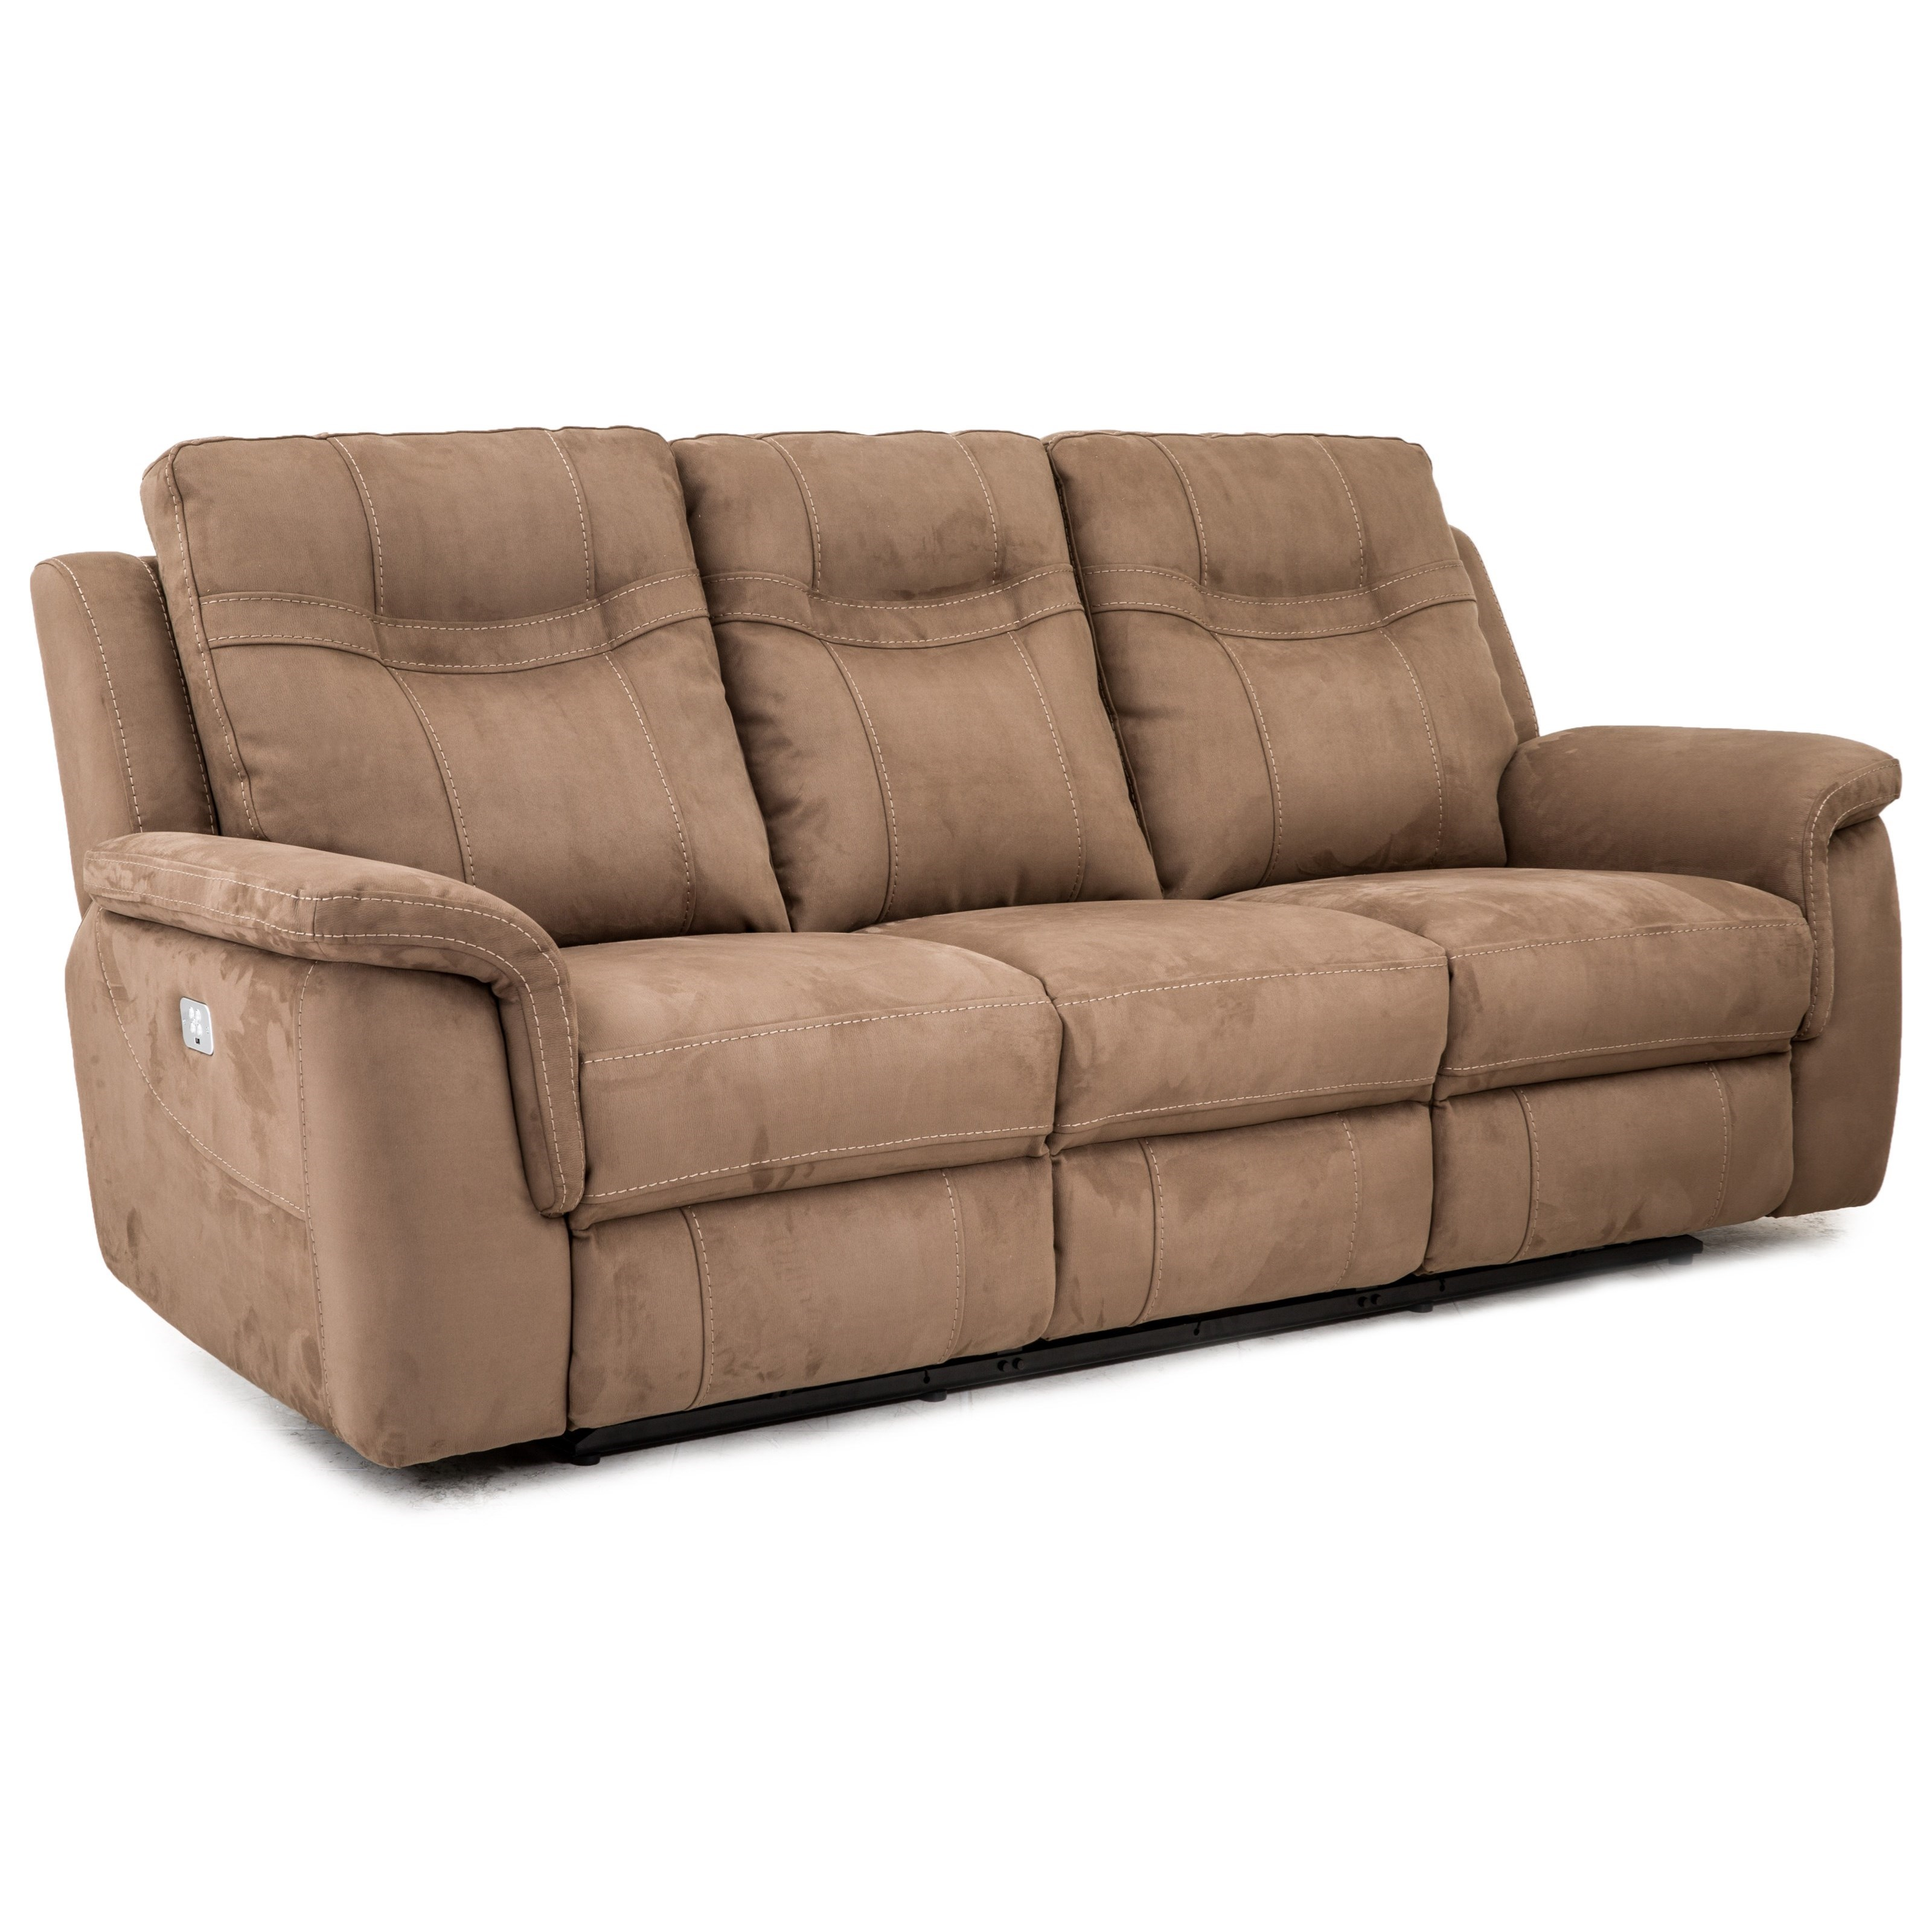 5169 Power Reclining Sofa by Cheers Sofa at Lagniappe Home Store